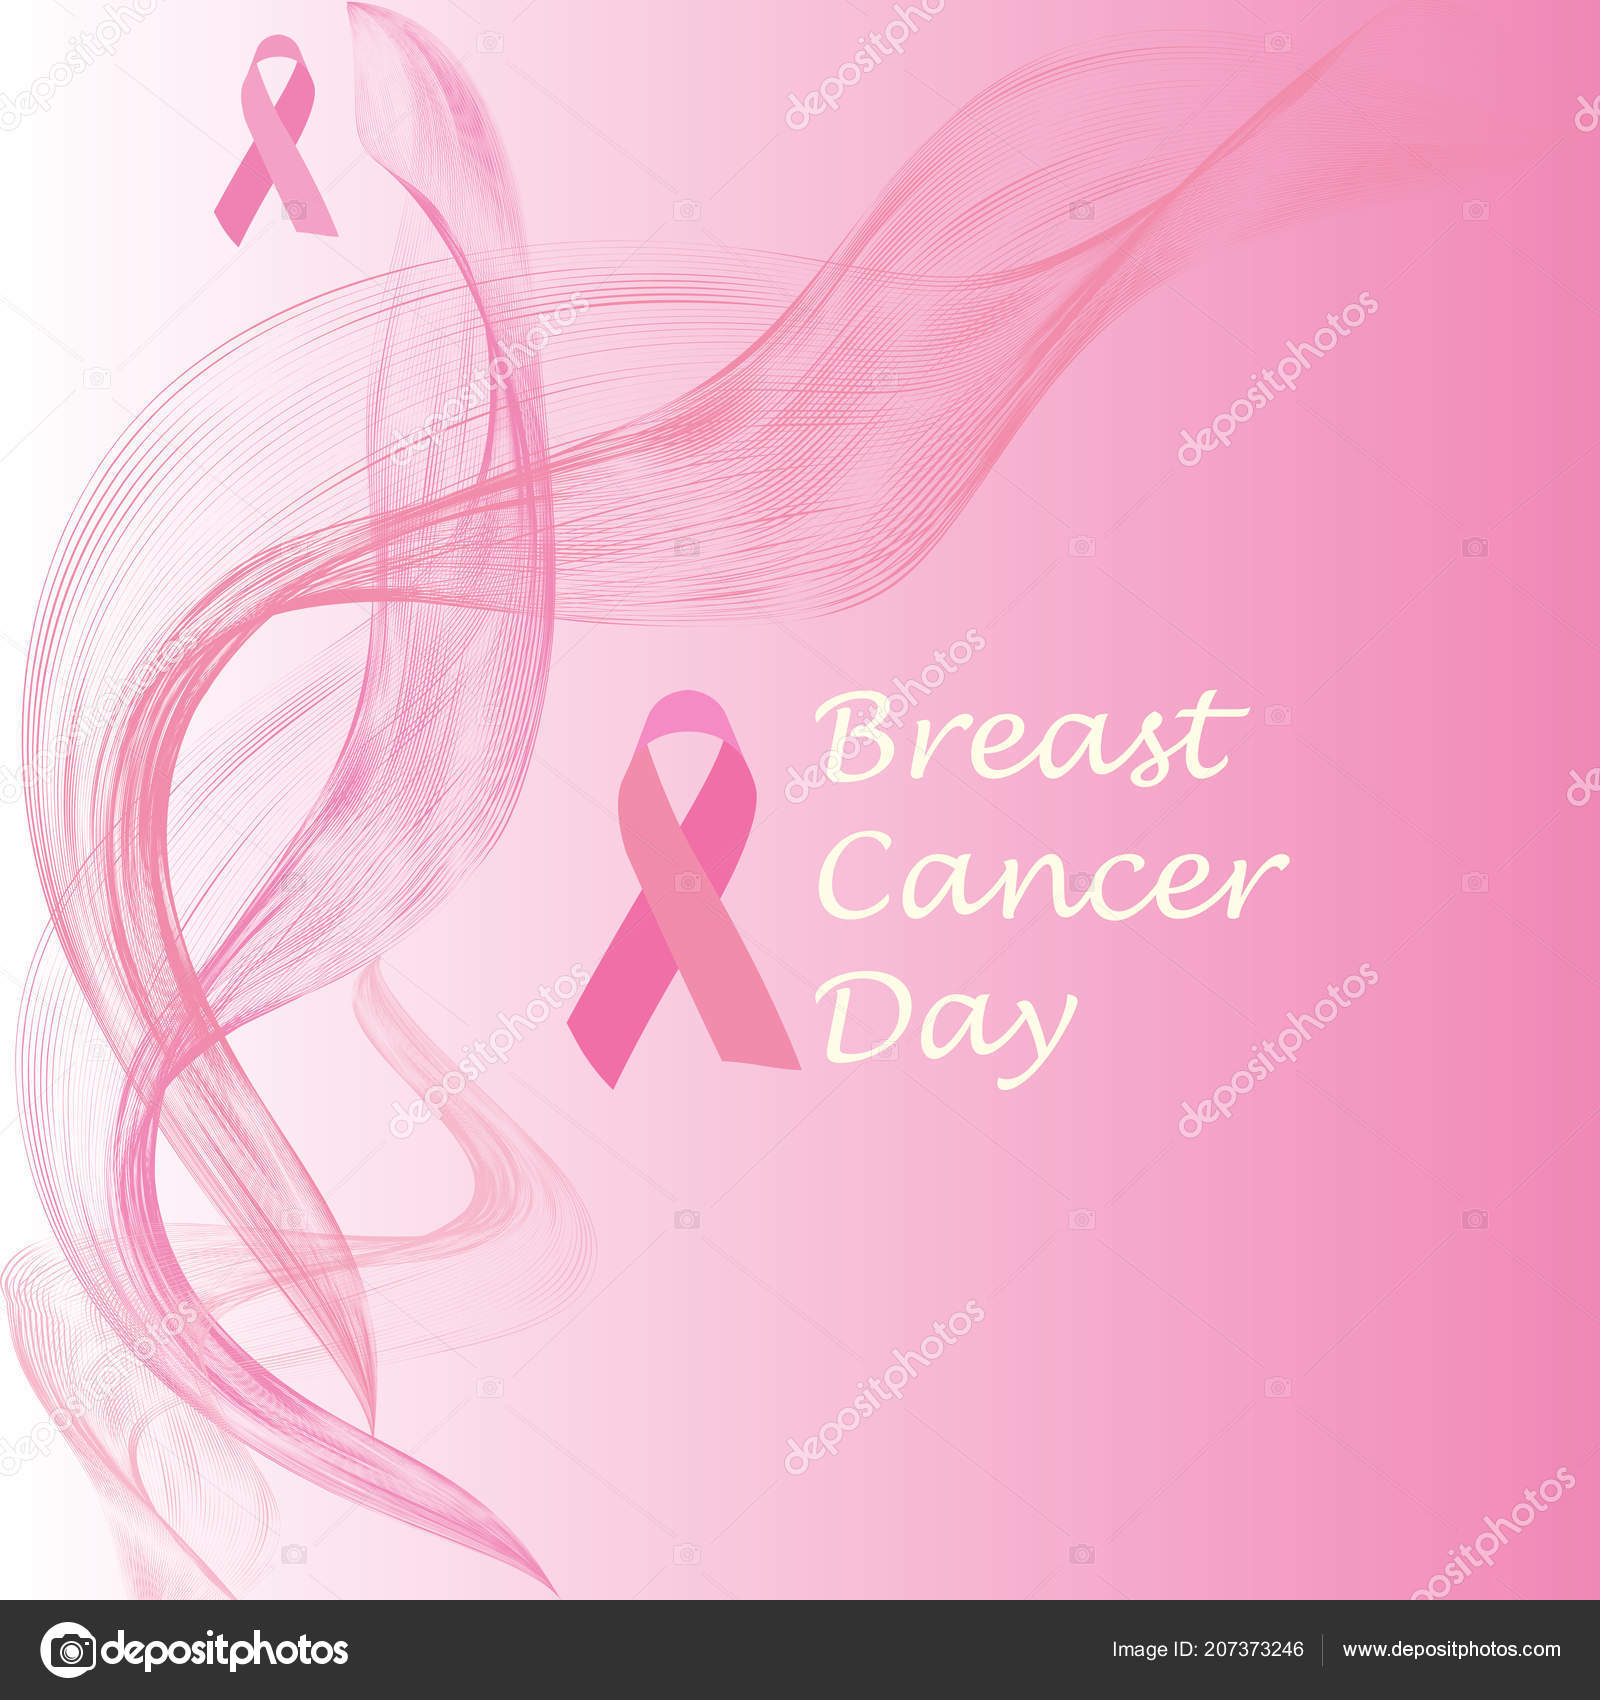 Breast Cancer October Awareness Month Campaign Poster Ribbon Sign Woman Stock Vector C Miller22 207373246